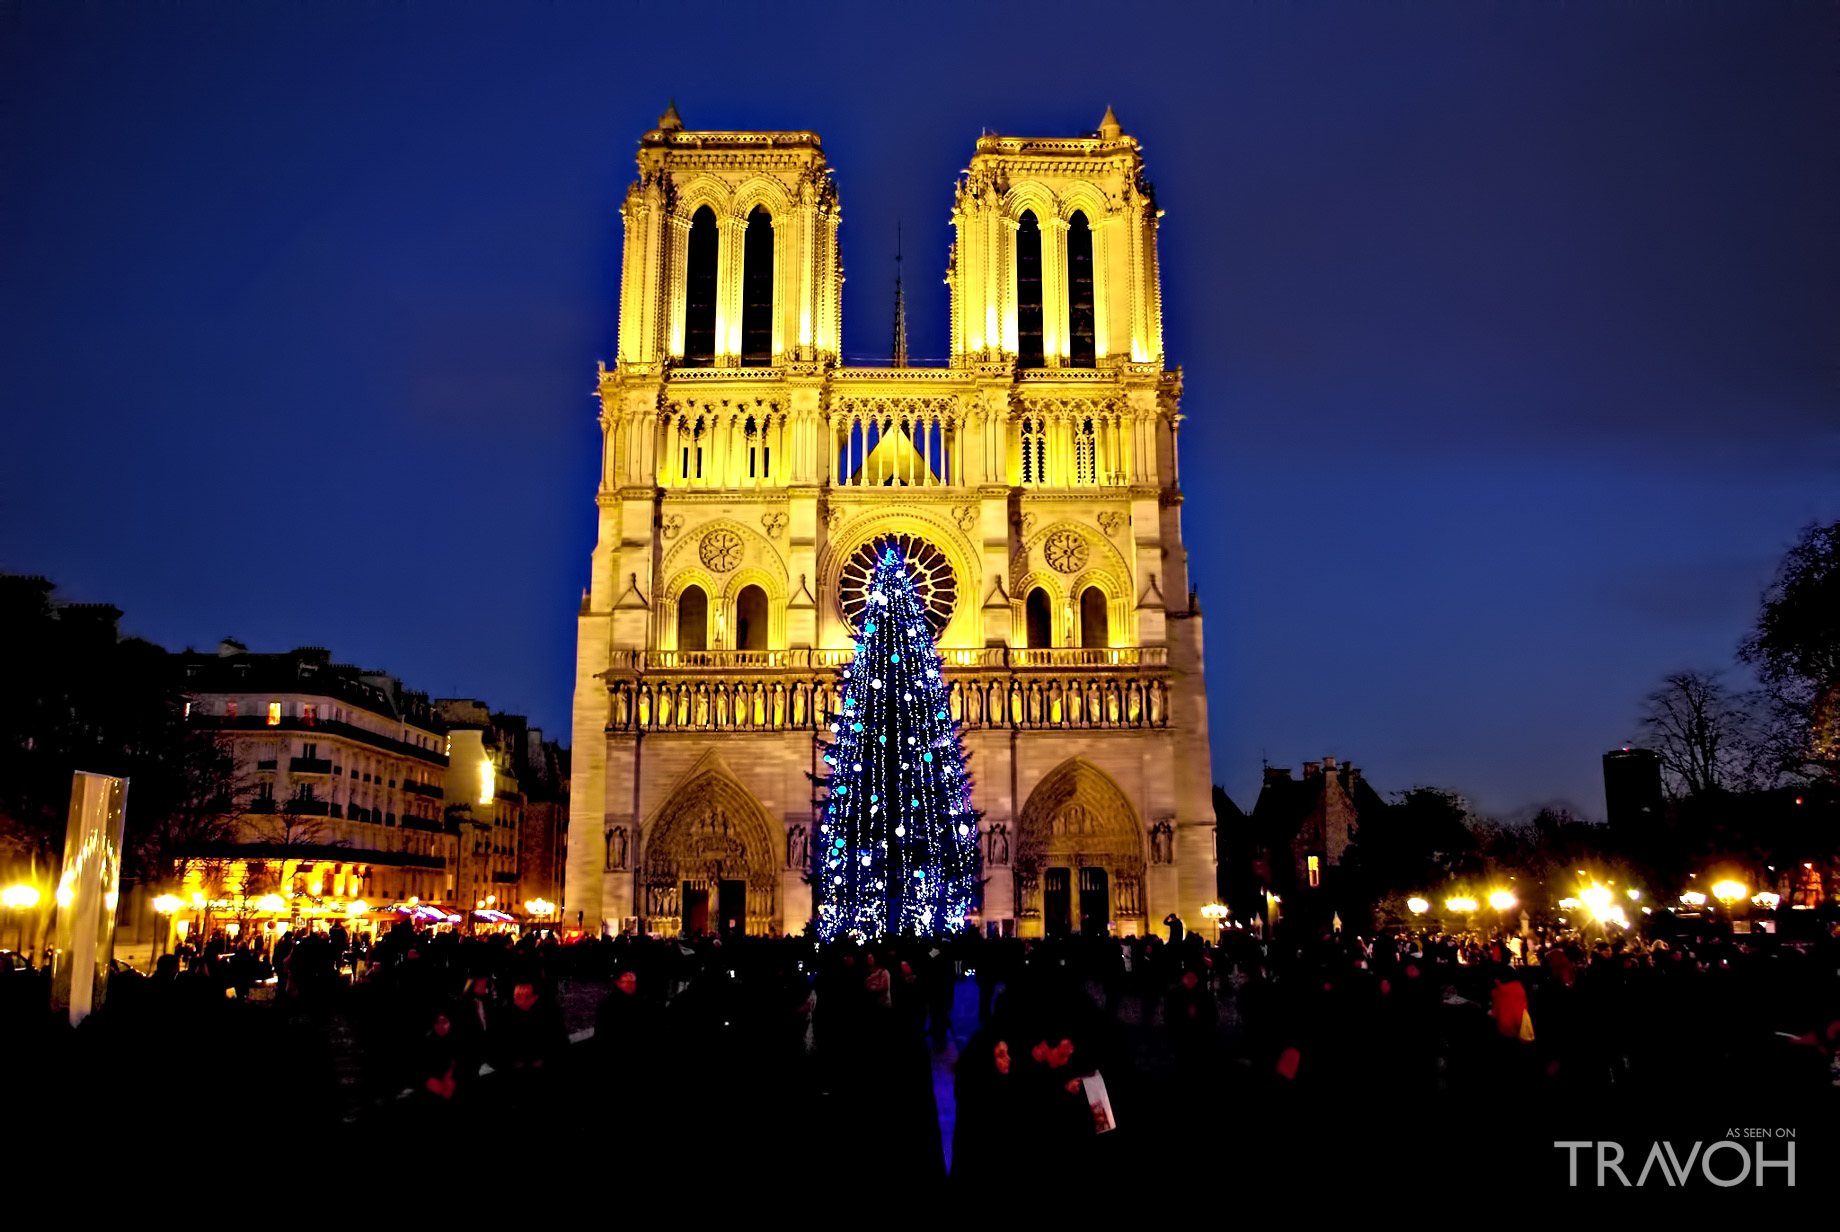 Christmas Holiday Services at Notre Dame Cathederal - Paris, France